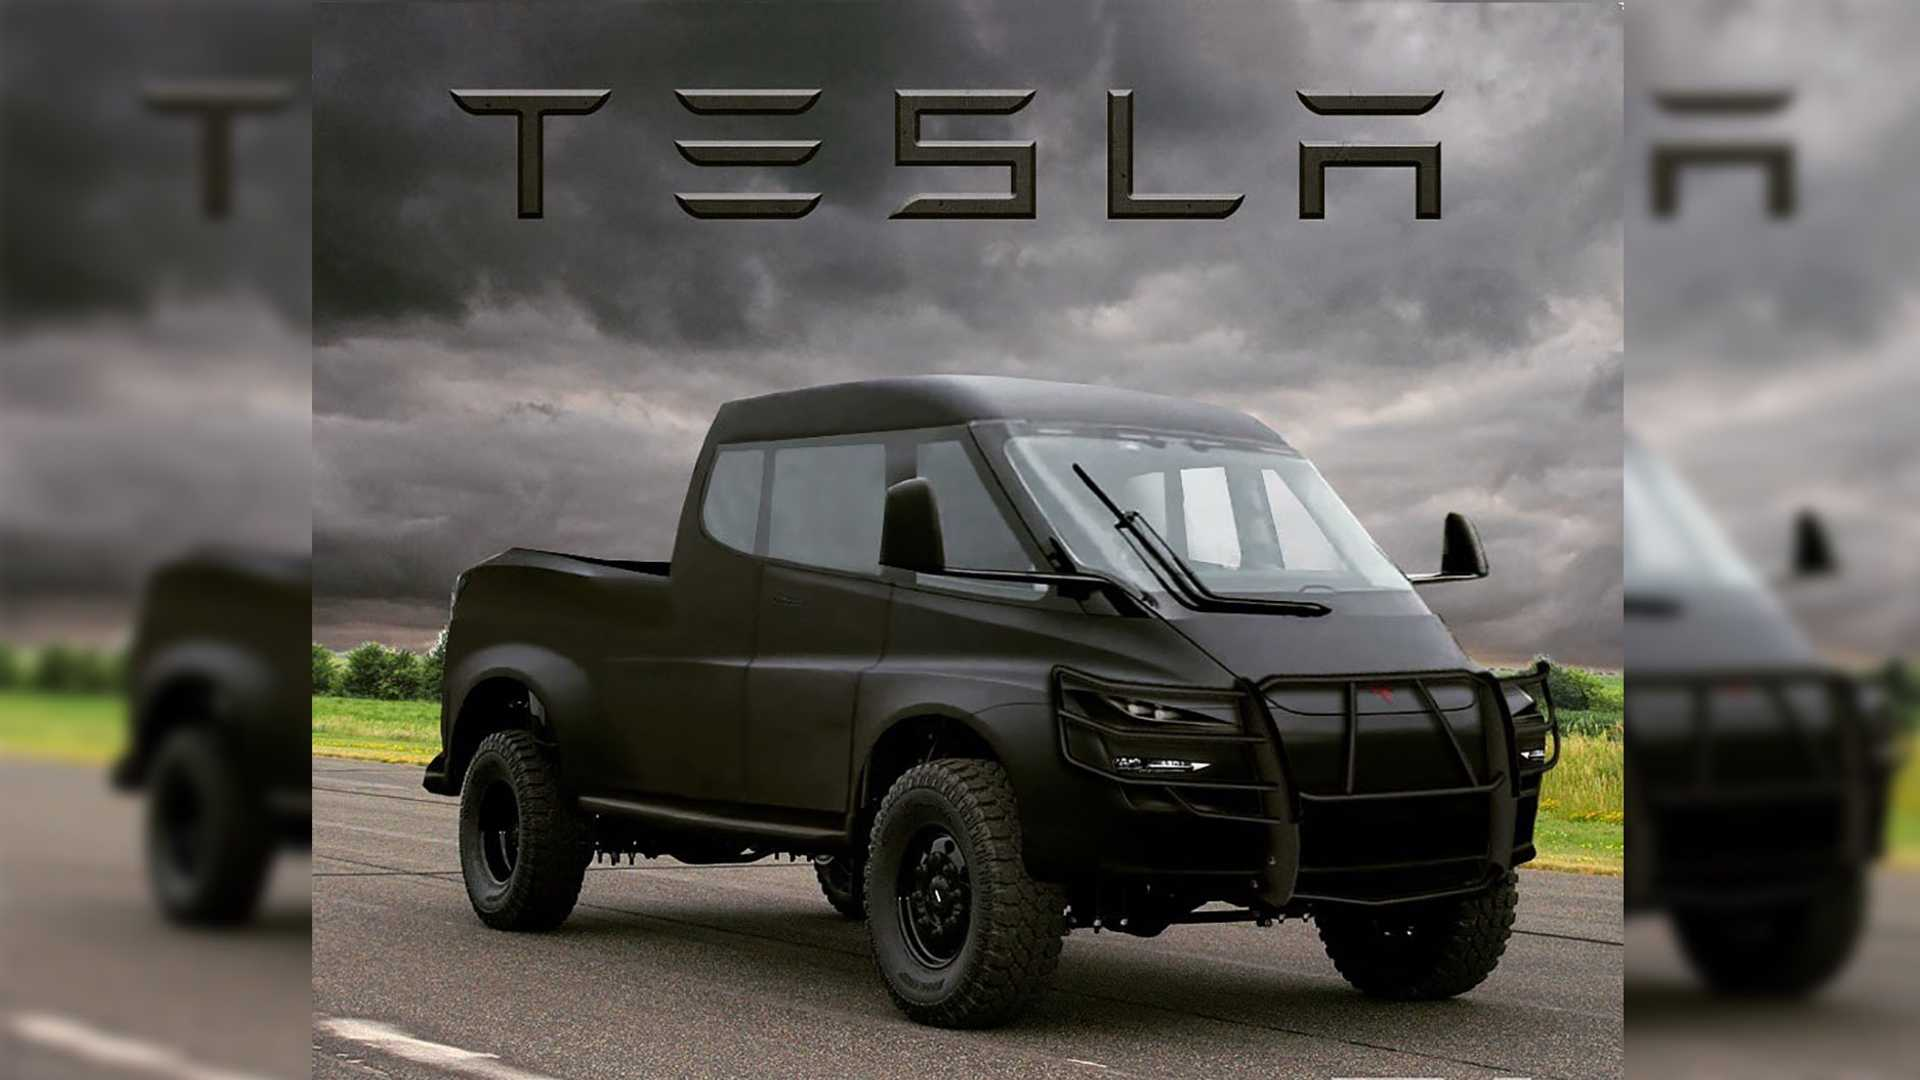 Musk: Tesla Truck Looks Like This Mixed With Armored Future Vehicle